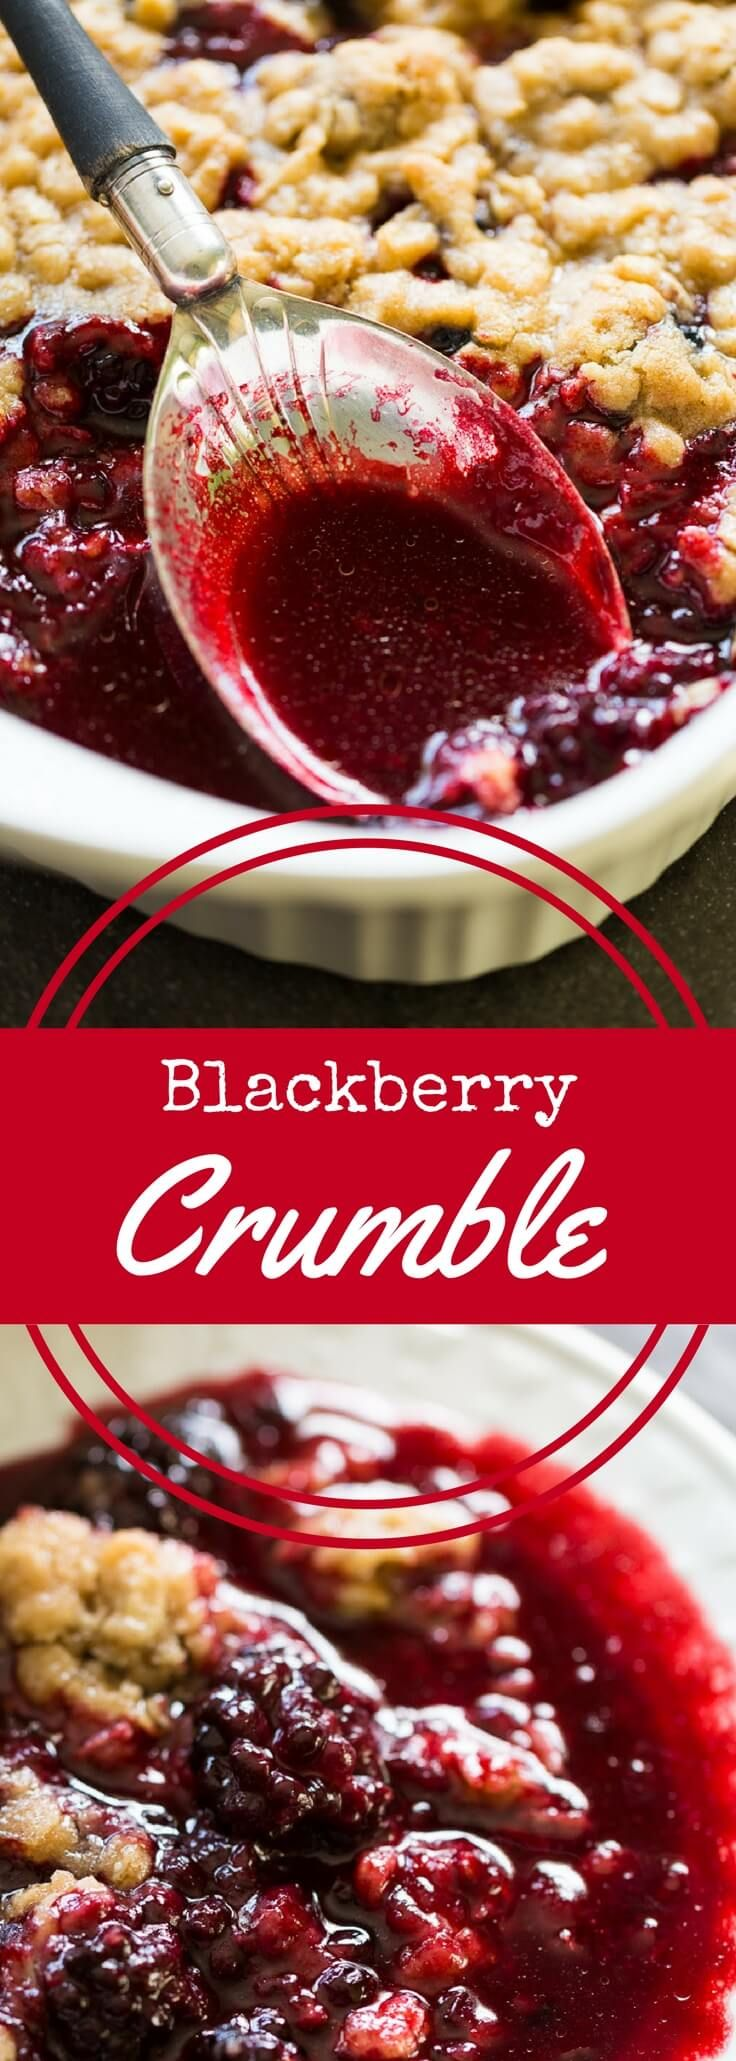 You'll love this easy blackberry crumble recipe. Even if you've never baked from scratch before, you'll find this recipe to be a snap! via @recipeforperfec